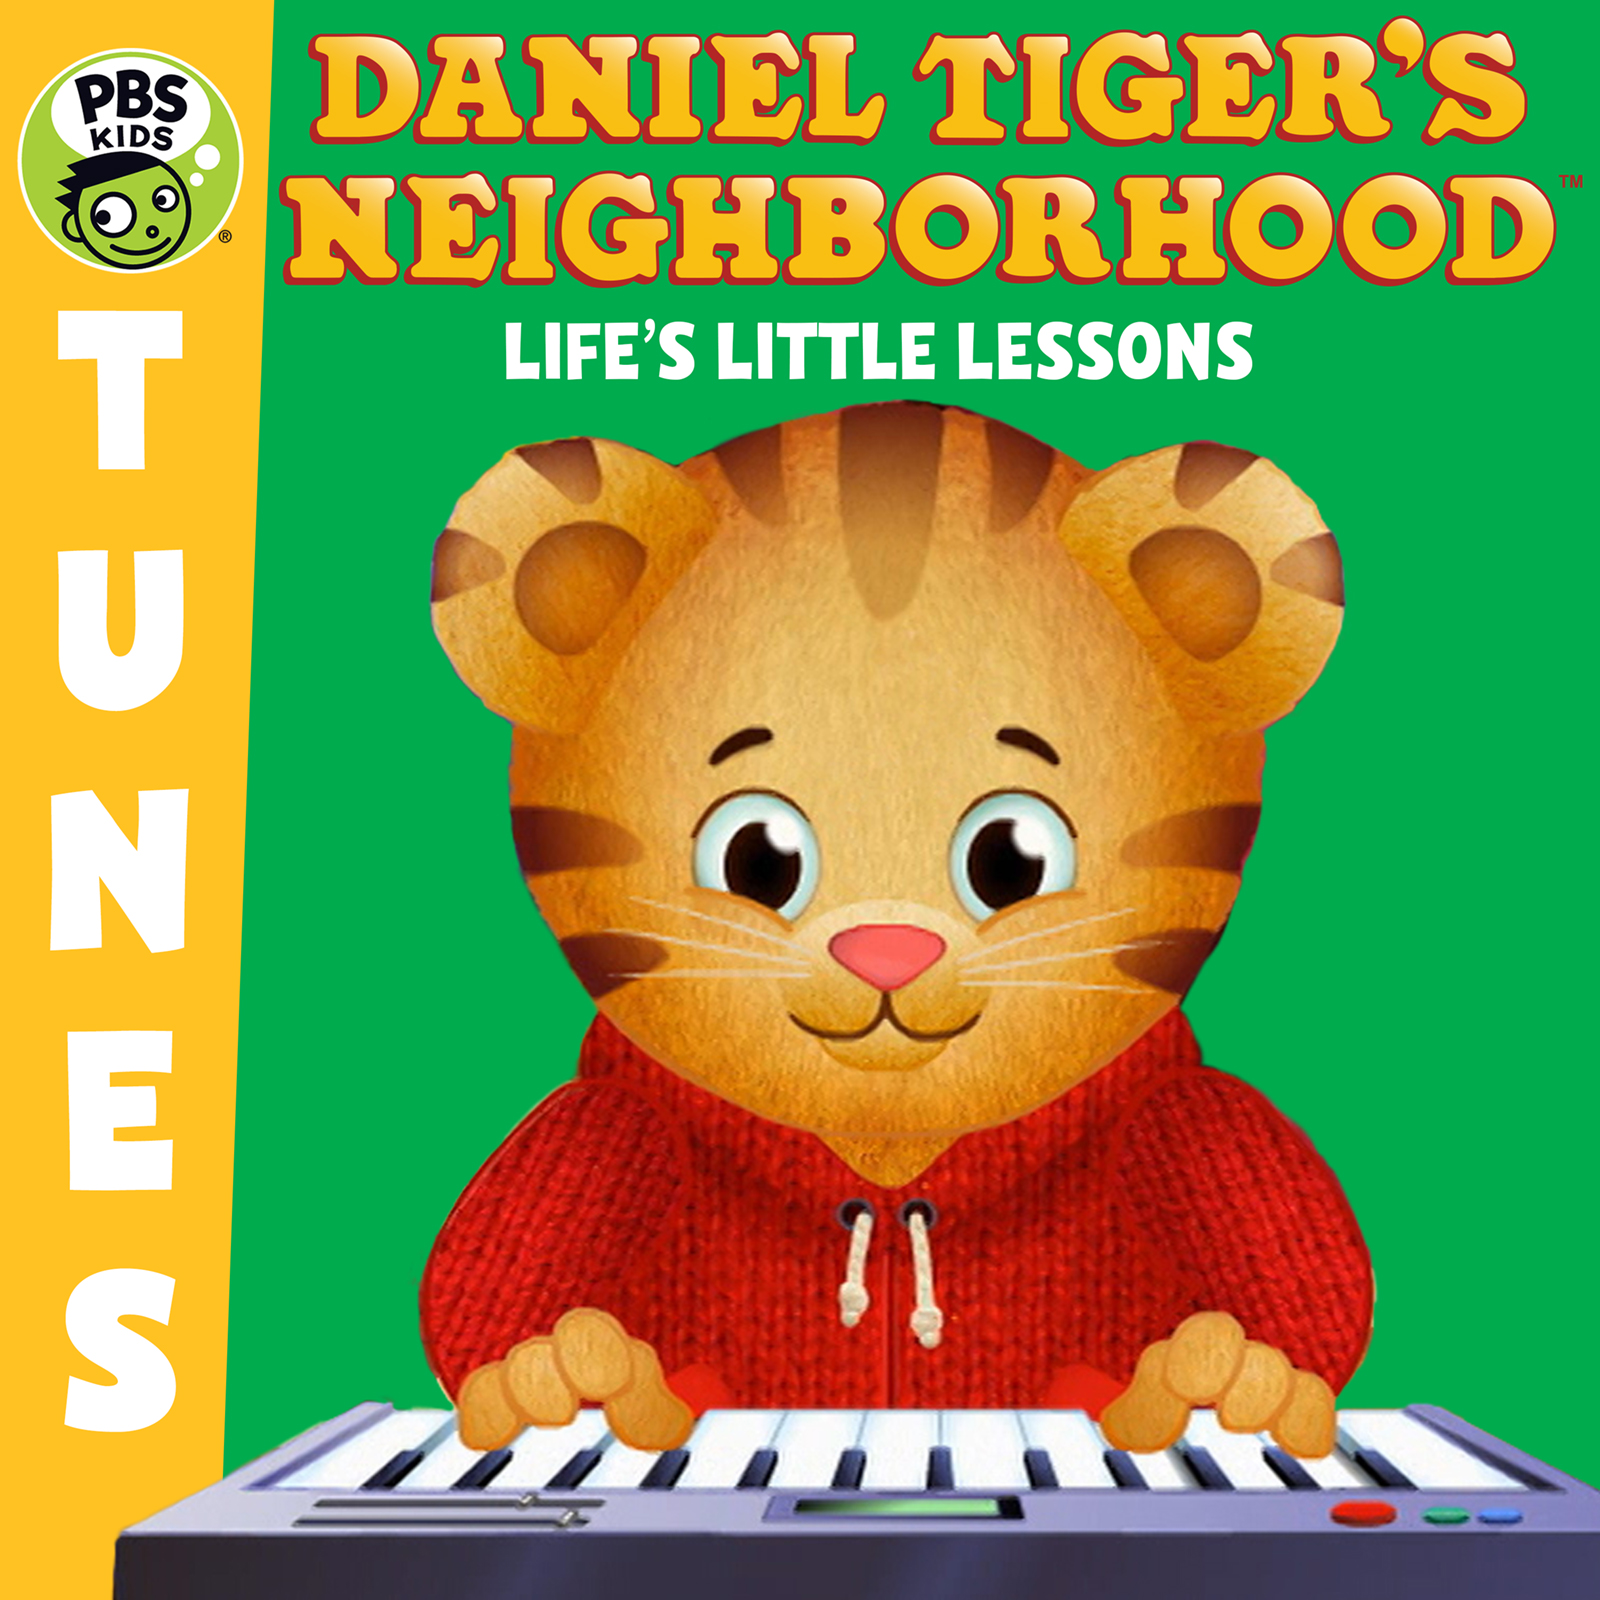 Daniel Tiger's Neighborhood - Life's Little Lessons  icon.